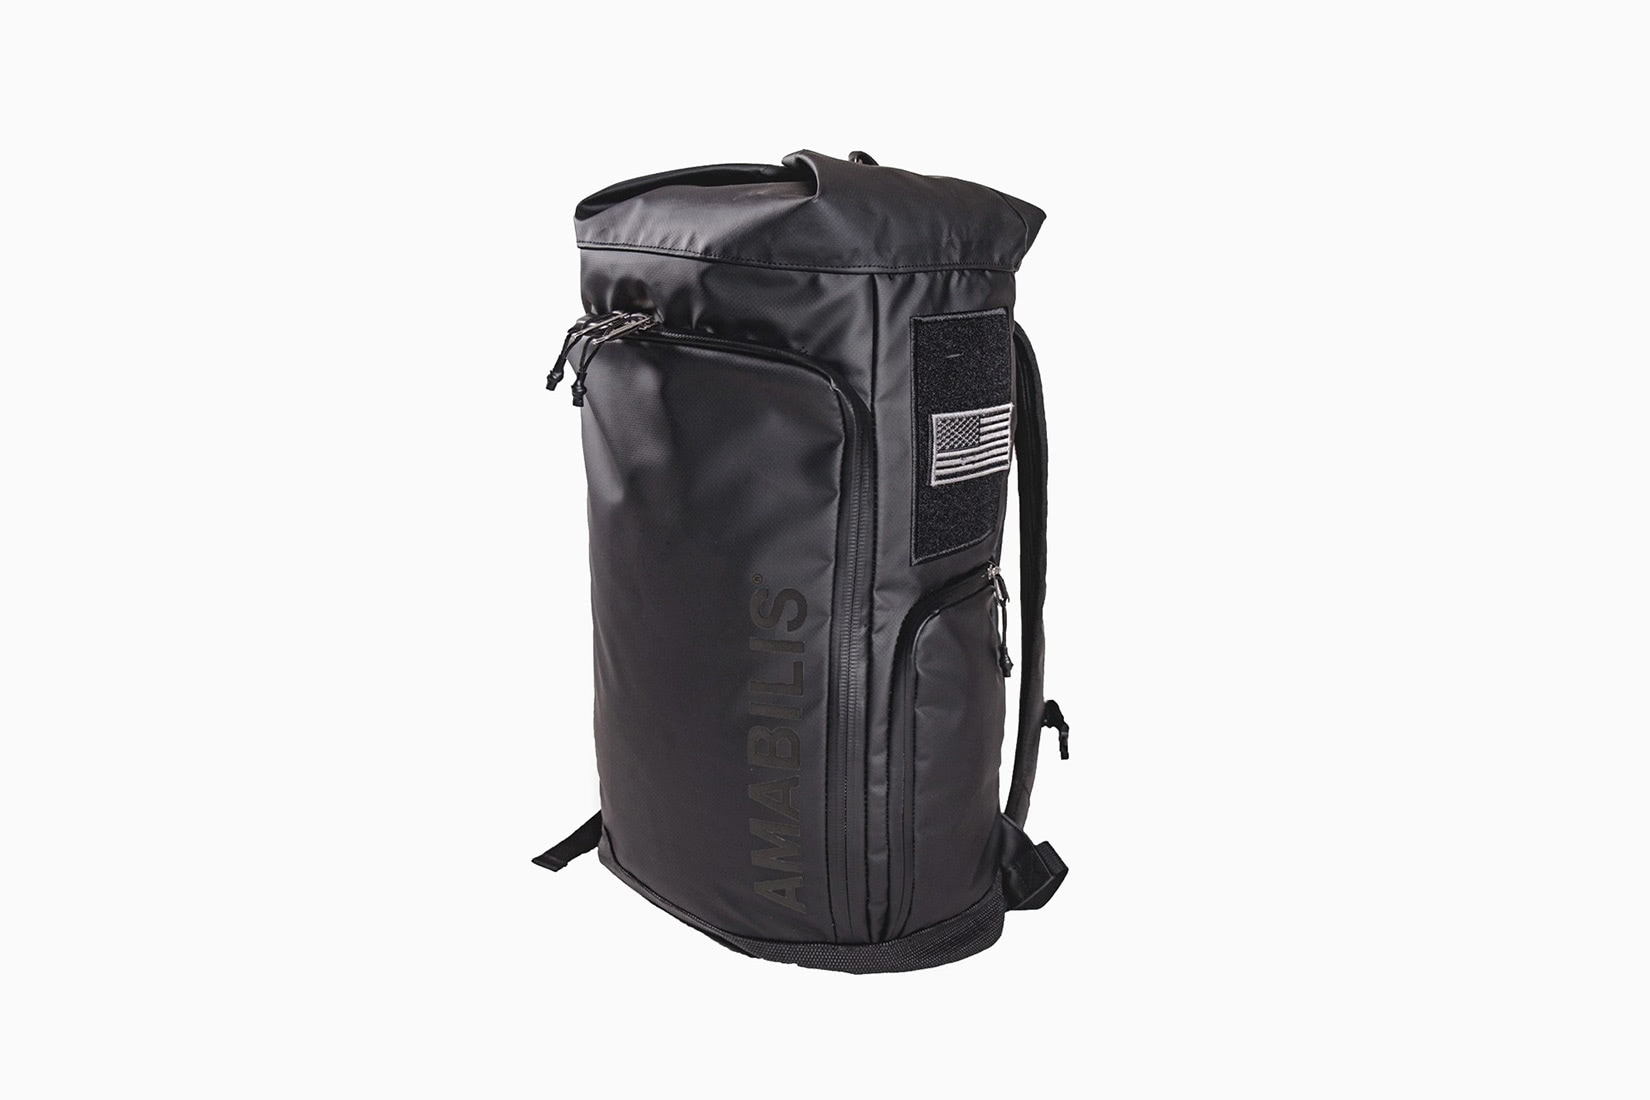 best tactical backpack amabilis urban responder rucksack - Luxe Digital